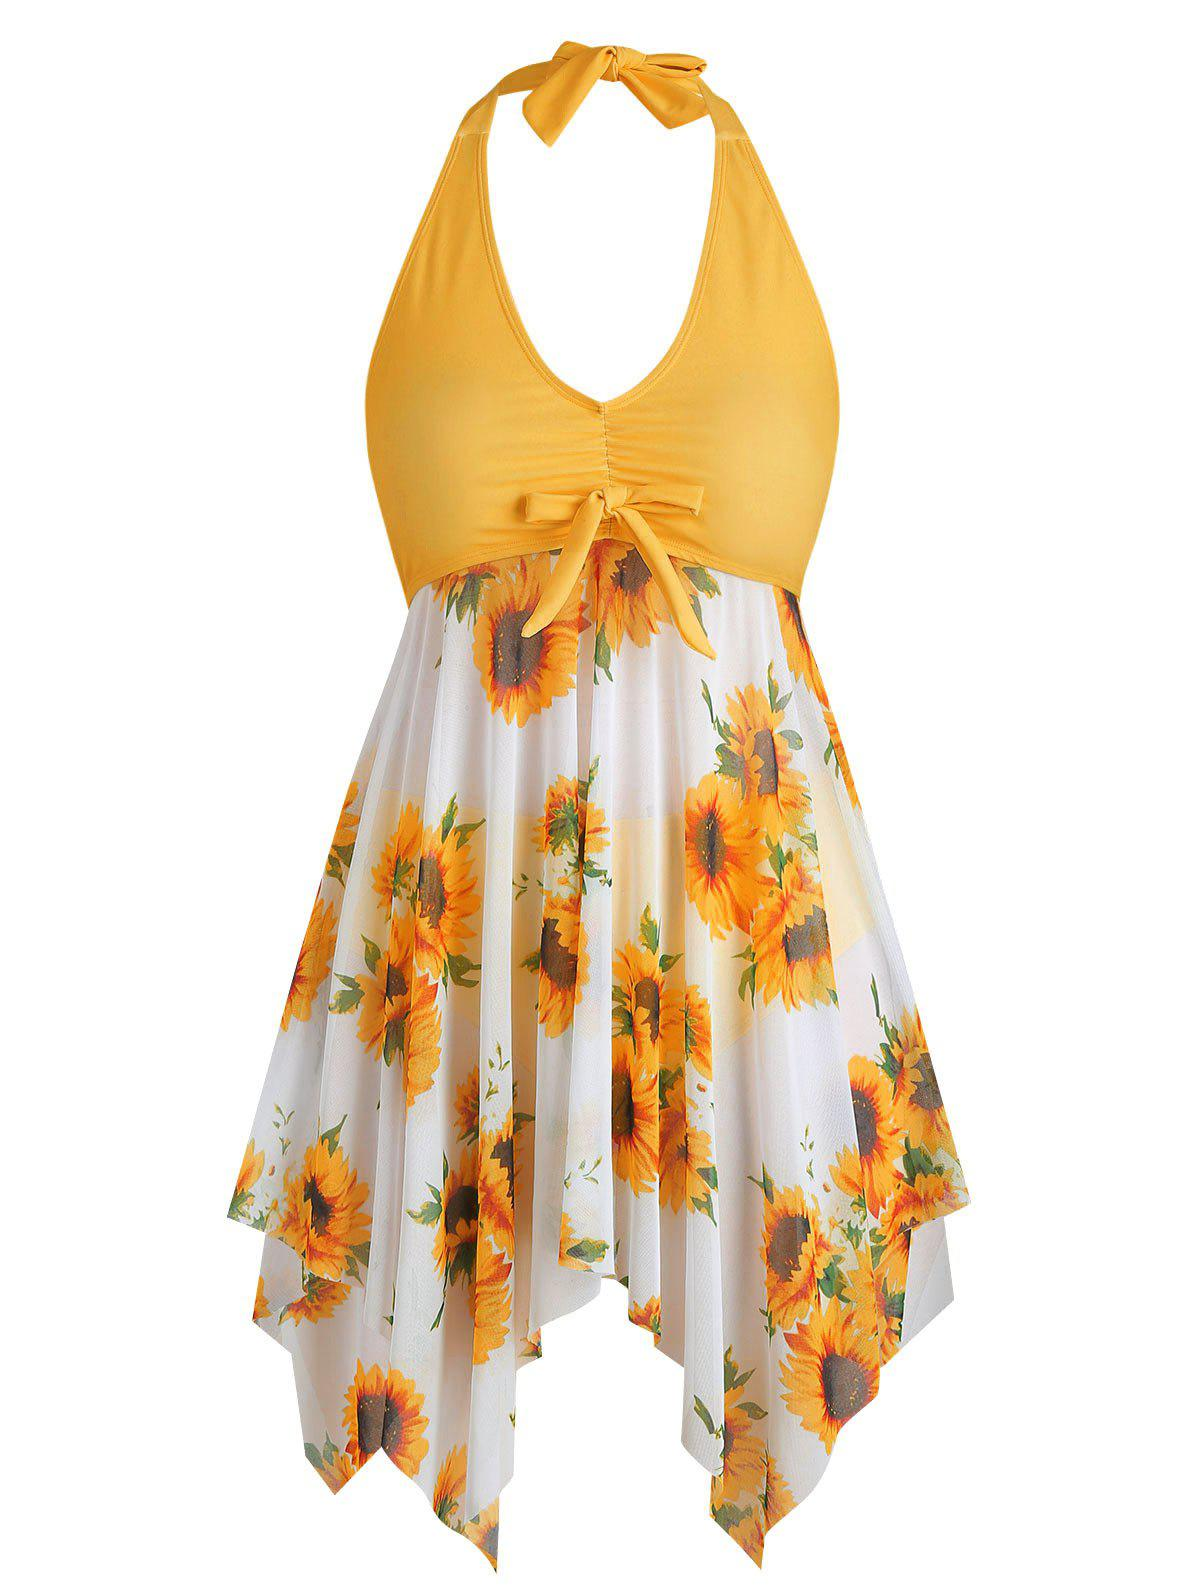 Bowknot Sunflower Floral Butterfly Plus Size Tankini Set - BEE YELLOW 3X